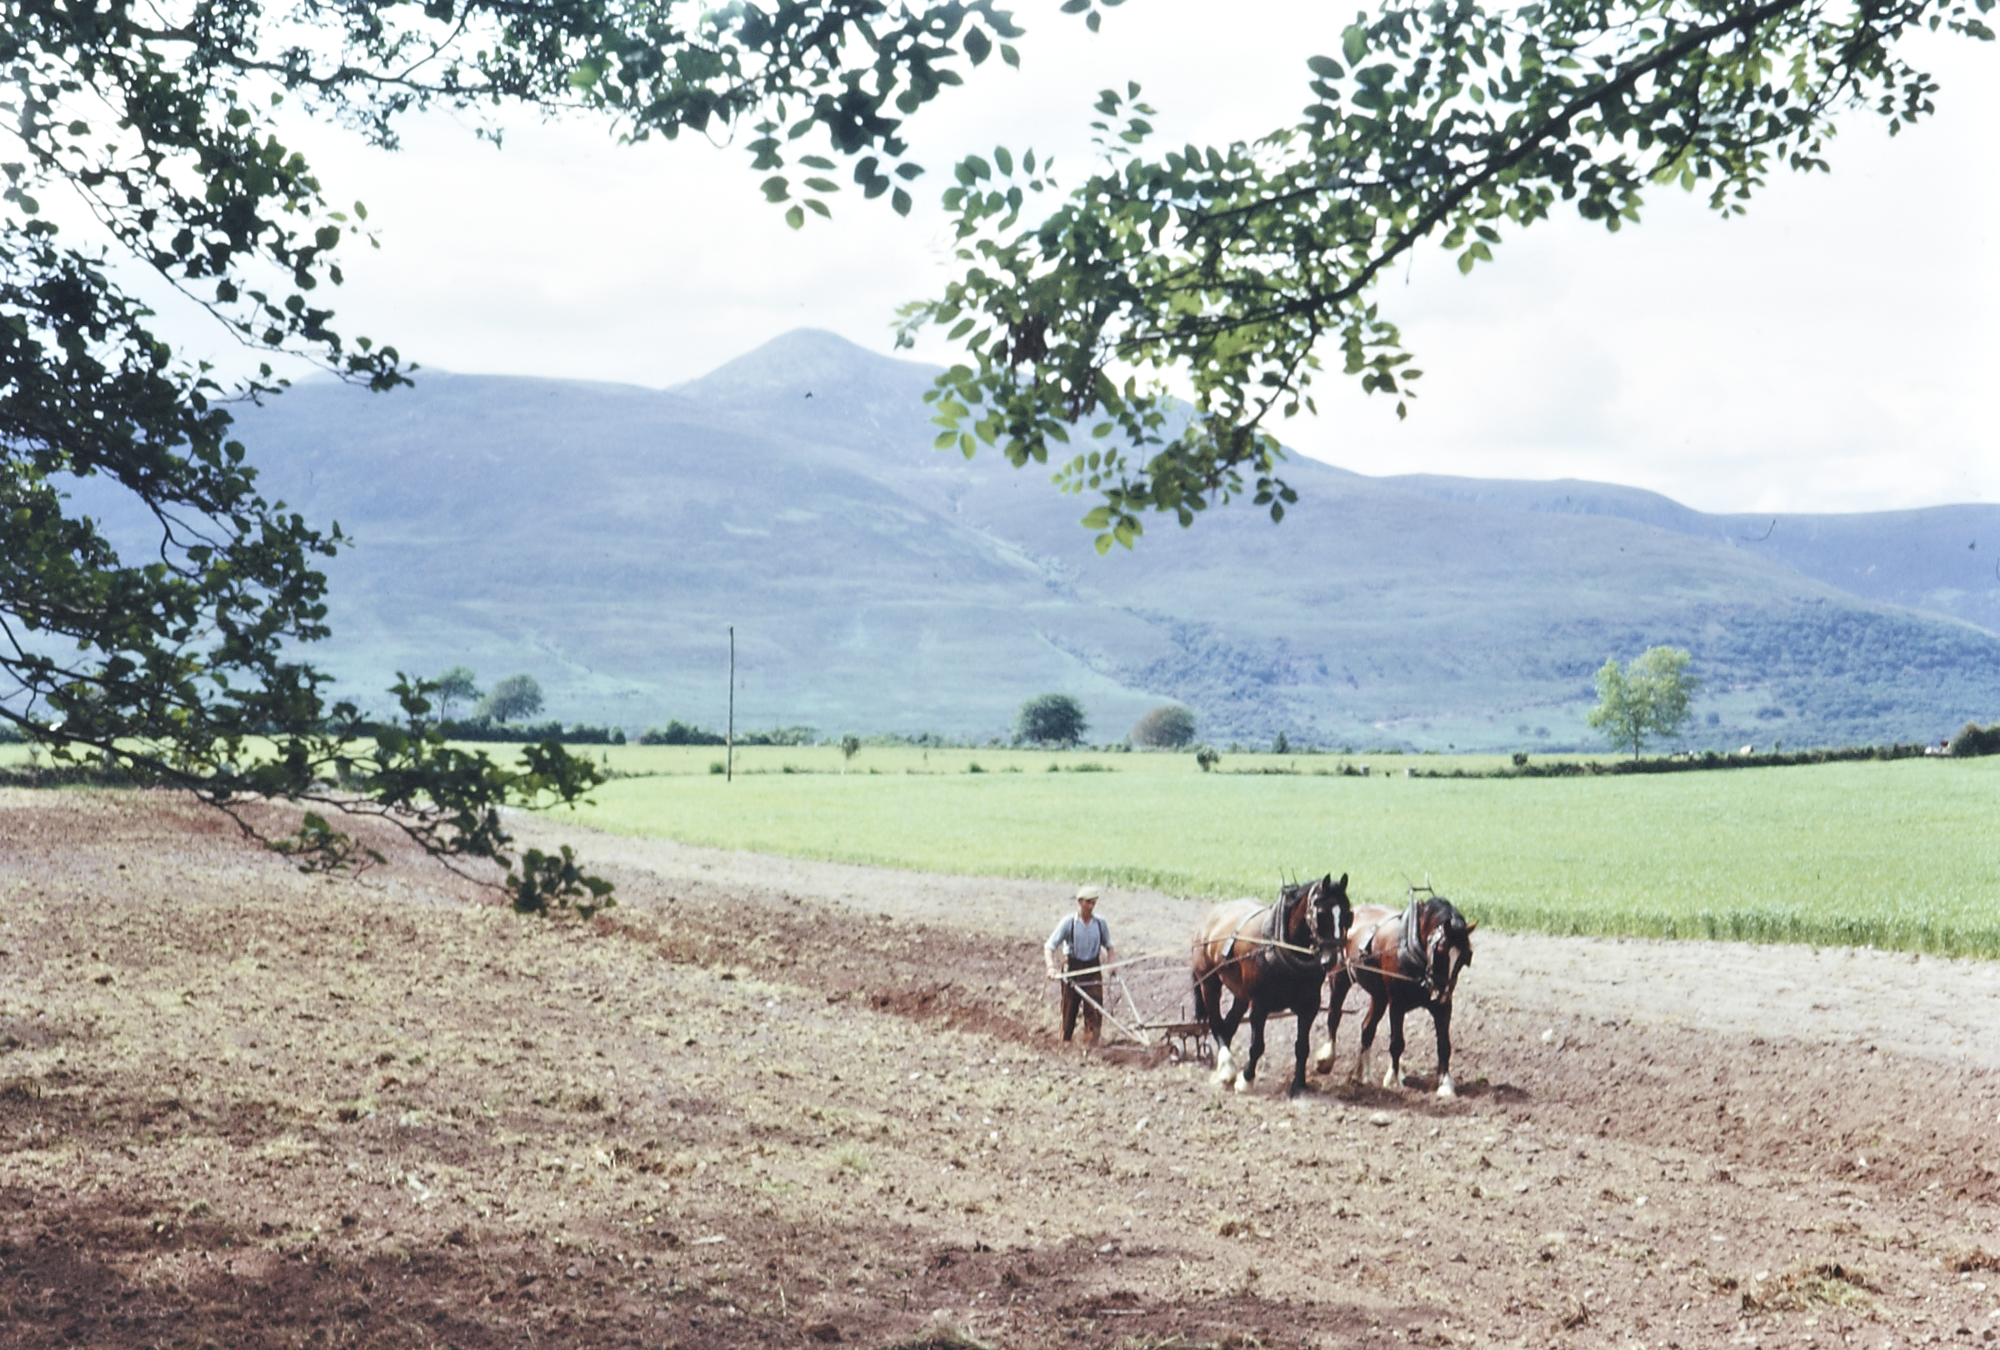 Ireland 1960s, Today sees a rare visit to the Tilbrook collection and to the Ring of Kerry. In colour no less. This lovely image of a horse-drawn plough with the sun streaming down on the furrowed ground would lighten the heart and raise our hopes! It is appropriate in its own way as today the 2017 Dublin Horse Show begins - with all the excitement, activity and of course horses galore. I hope they have a great show! Photographer: Richard Tilbrook Collection: Tilbrook Photographic Collection Date: June 1963